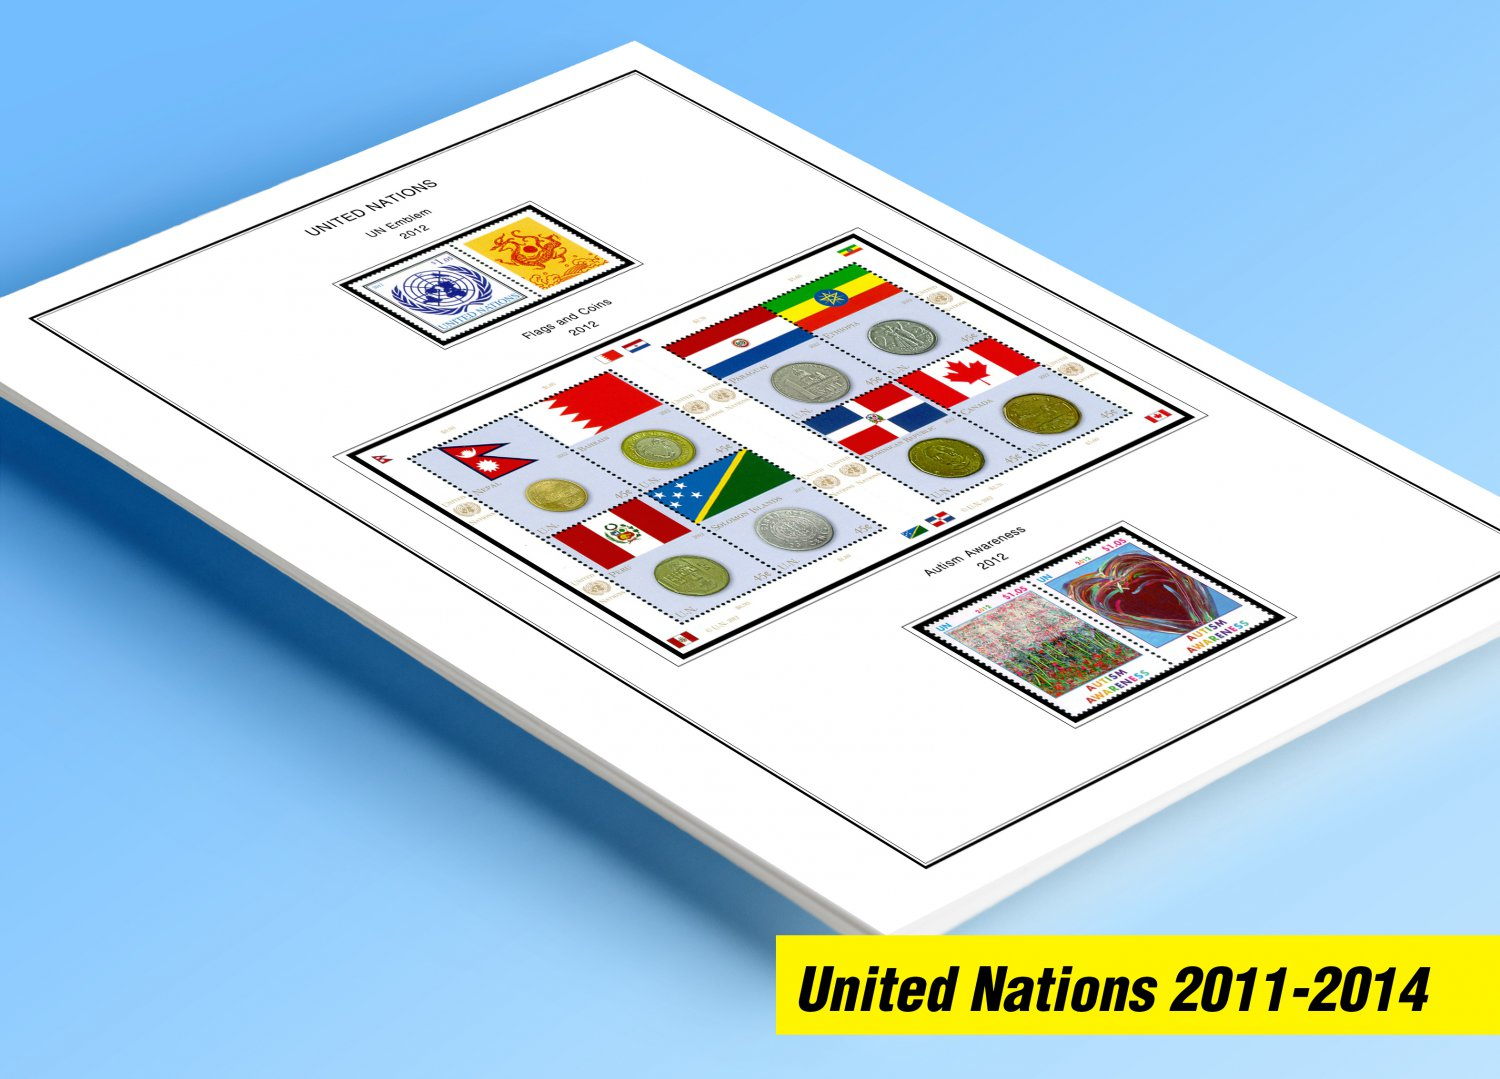 COLOR PRINTED UNITED NATIONS 2011-2014 STAMP ALBUM PAGES (66 illustrated pages)